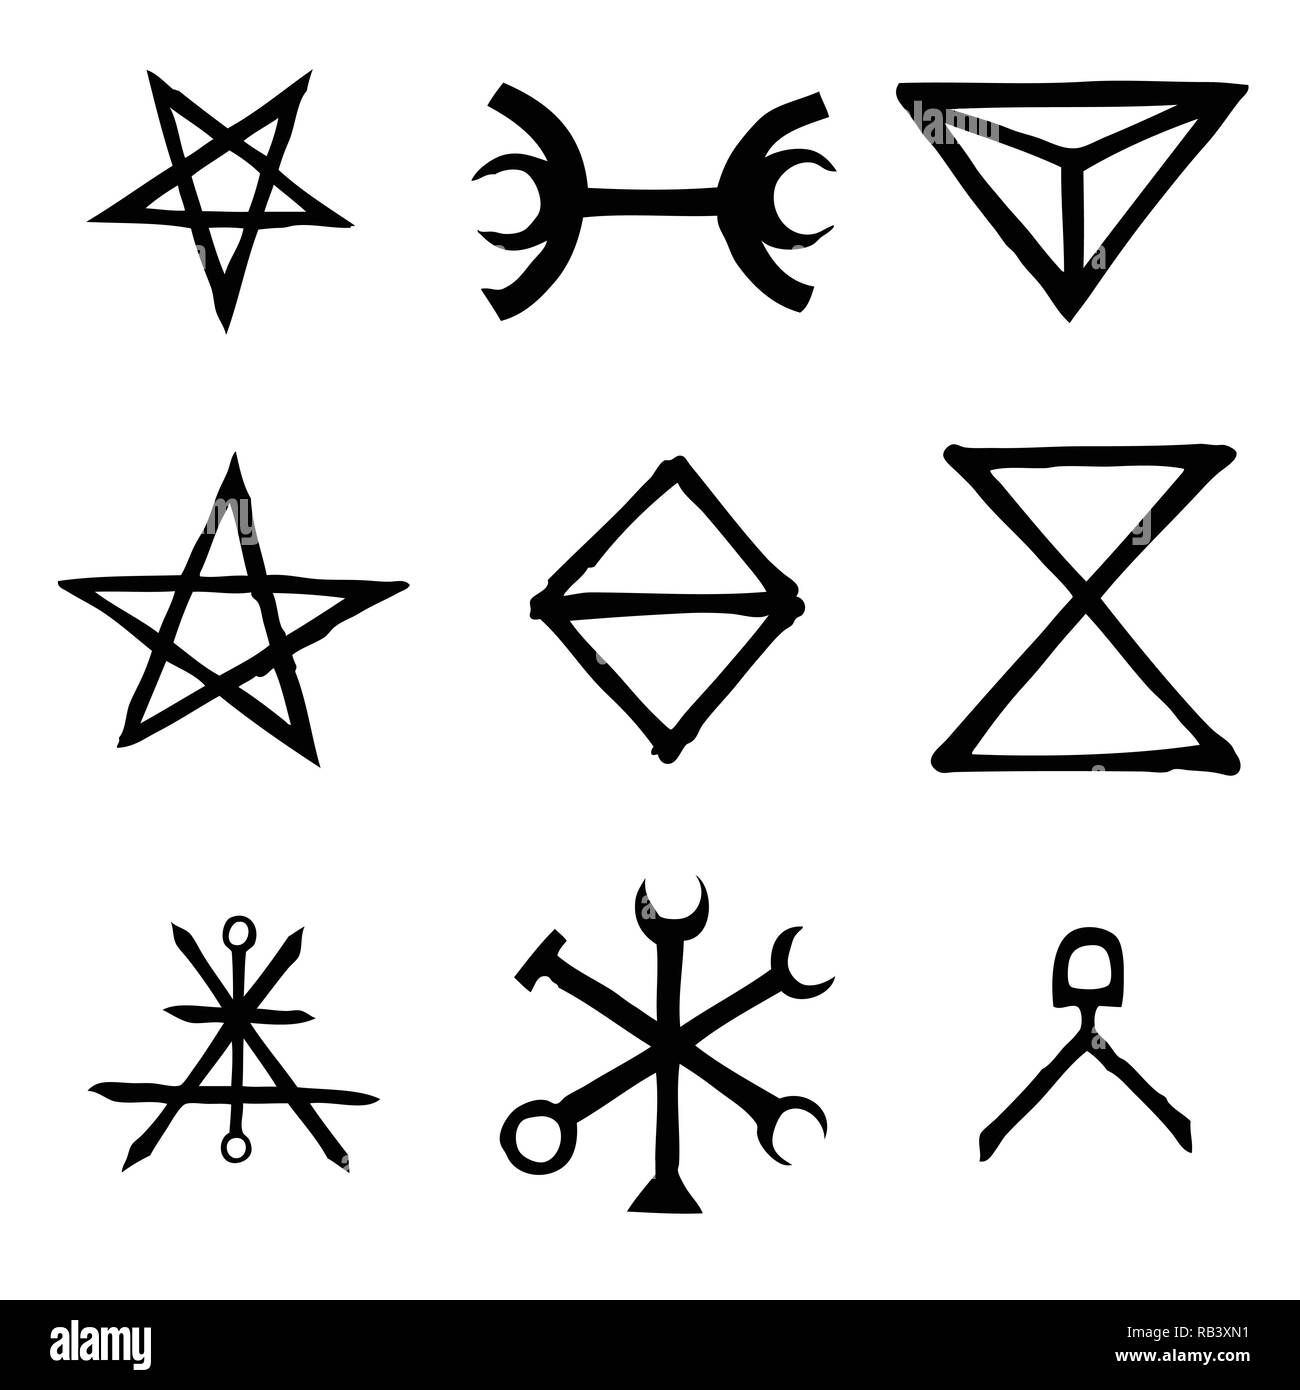 Wiccan Symbols Imaginary Cross Symbols Inspired By Antichrist Pentagram And Witchcraft Vector Stock Vector Image Art Alamy